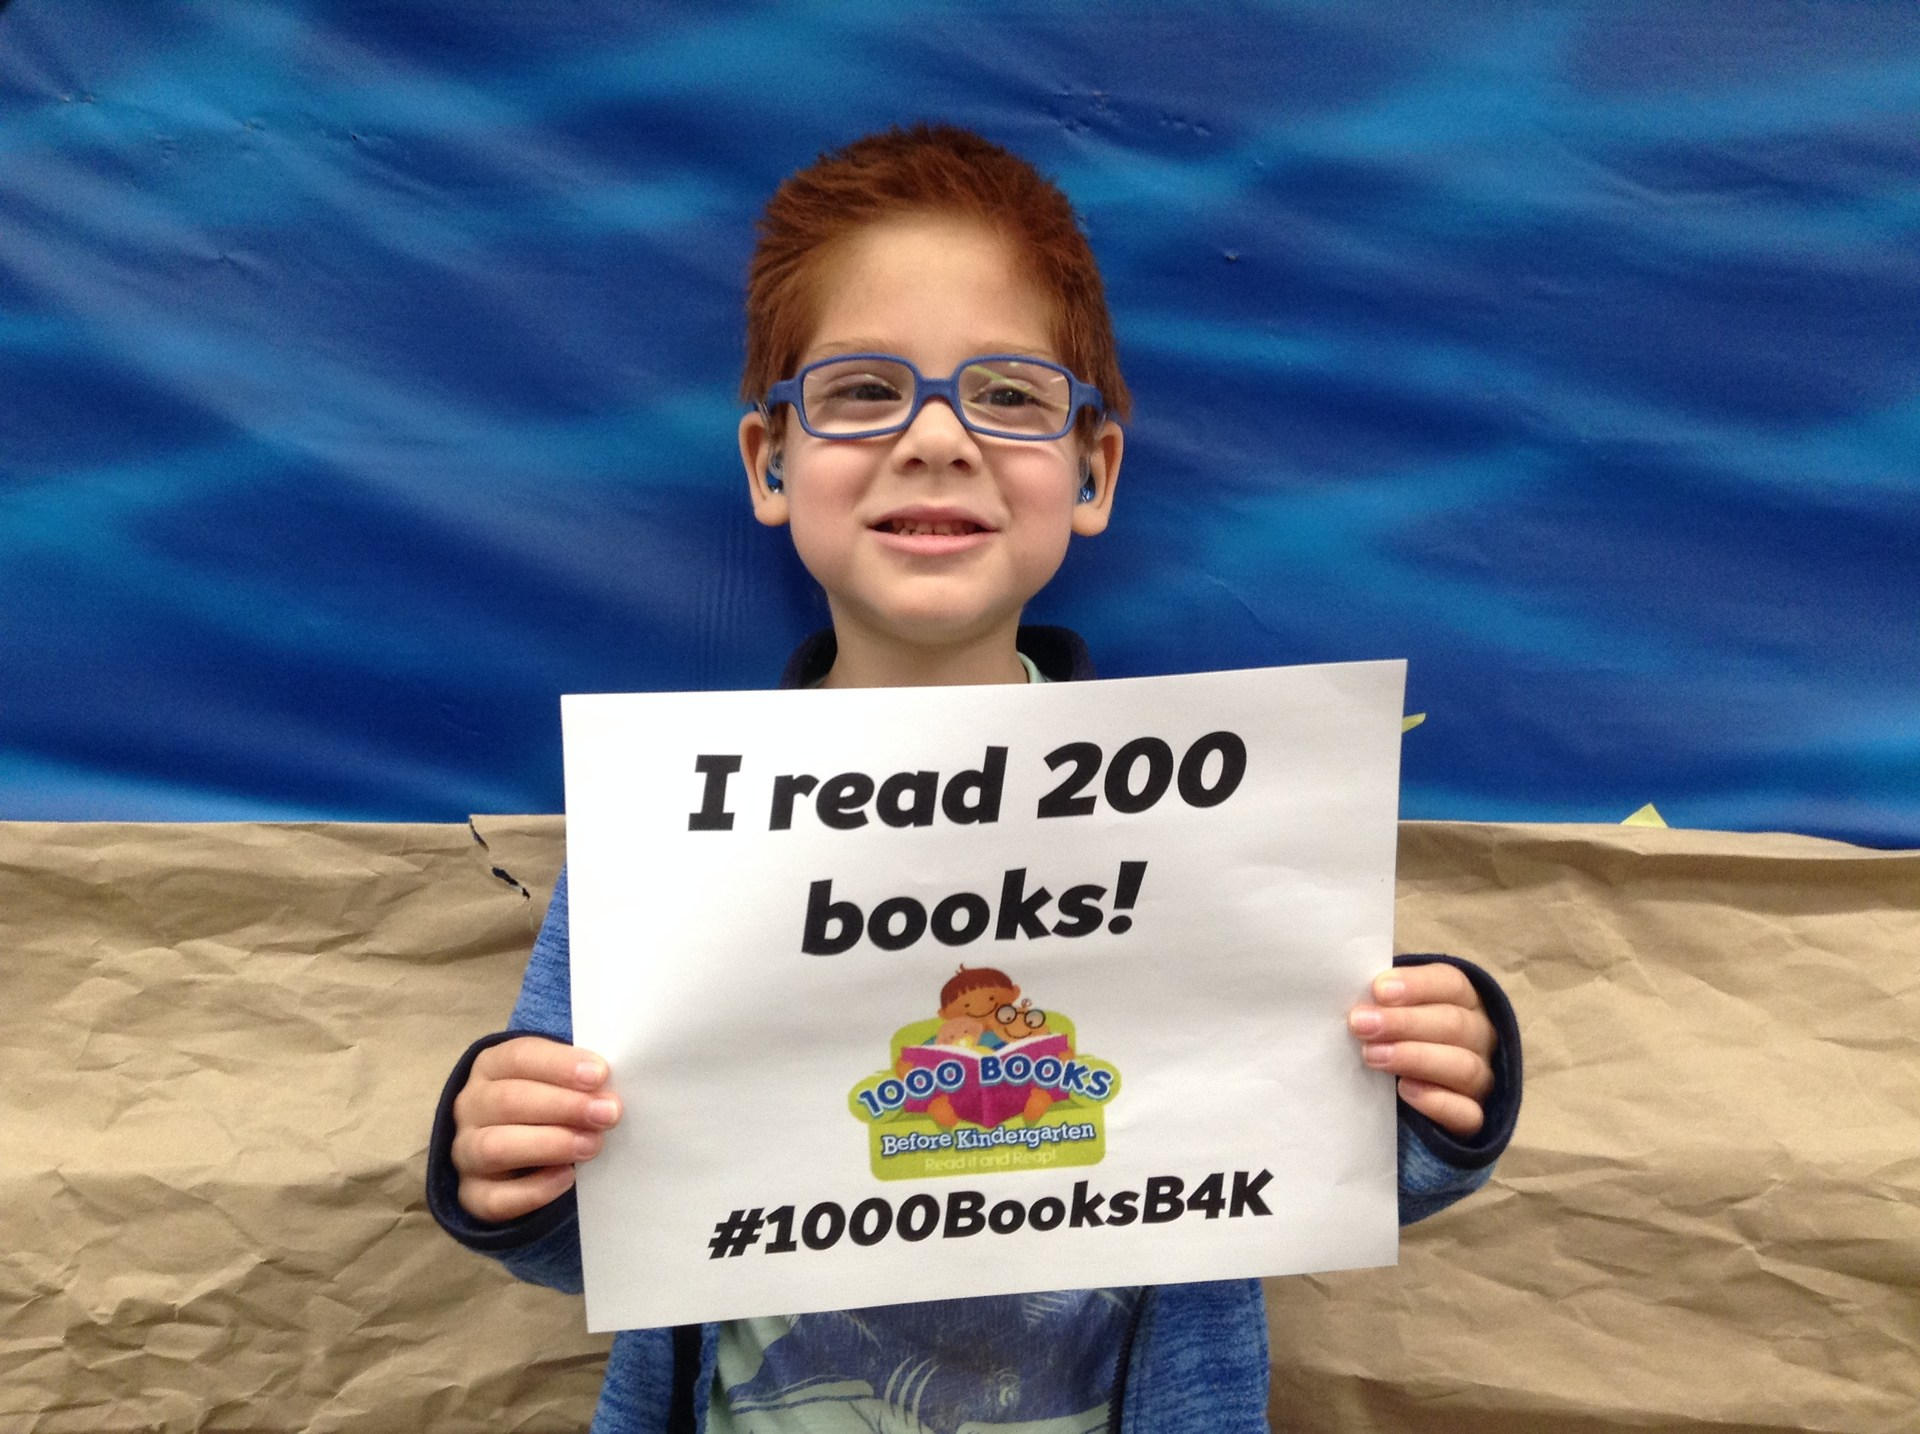 Photo of preschool student holding a sign showing that he has read 200 books.